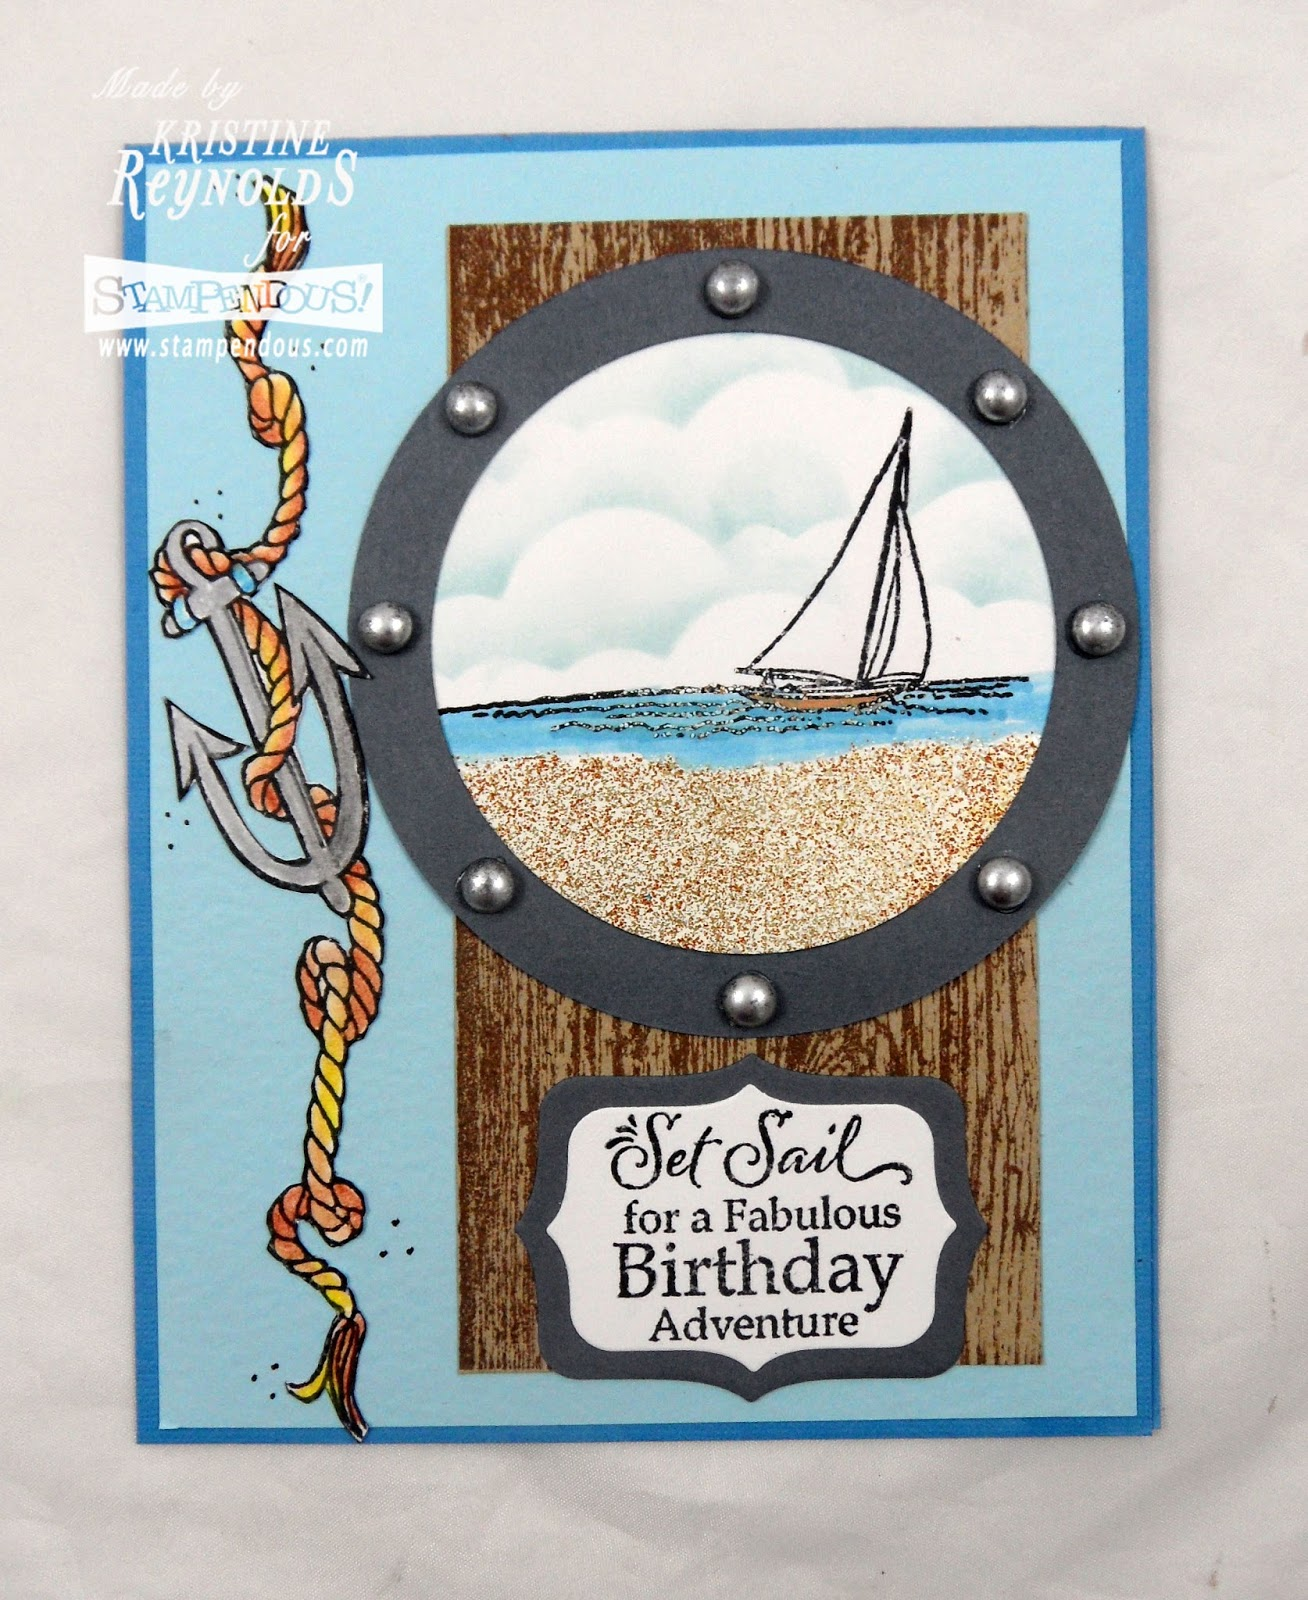 Stamping & Scrapping In California: Set Sail